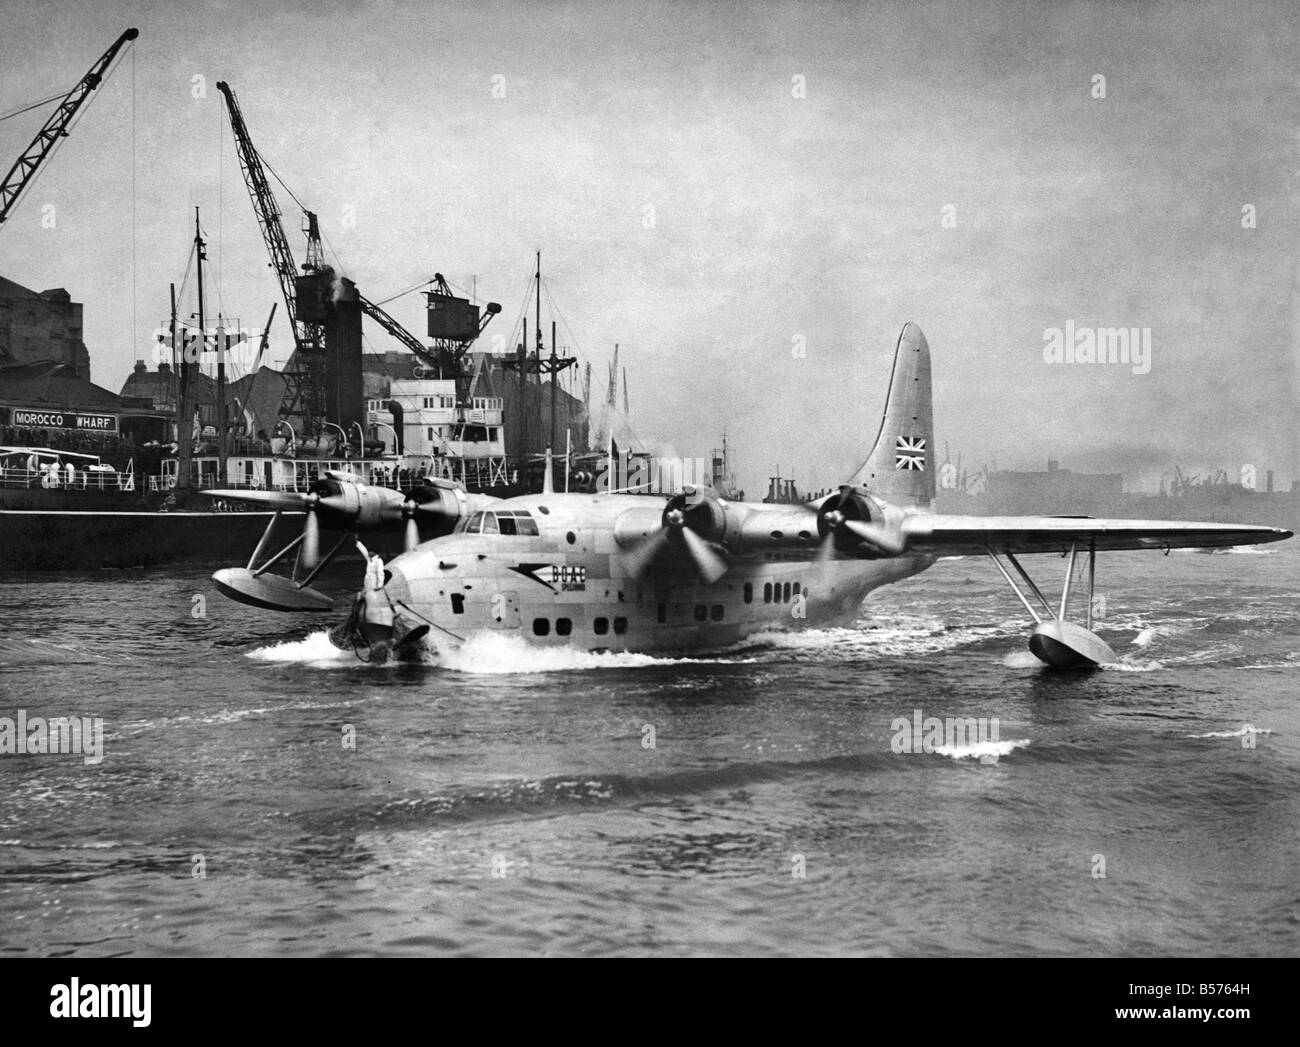 The Short S.45 Solent 2 the last of the large flying boats flown by BOAC on overseas routes.  It first flew in 1946 - Stock Image